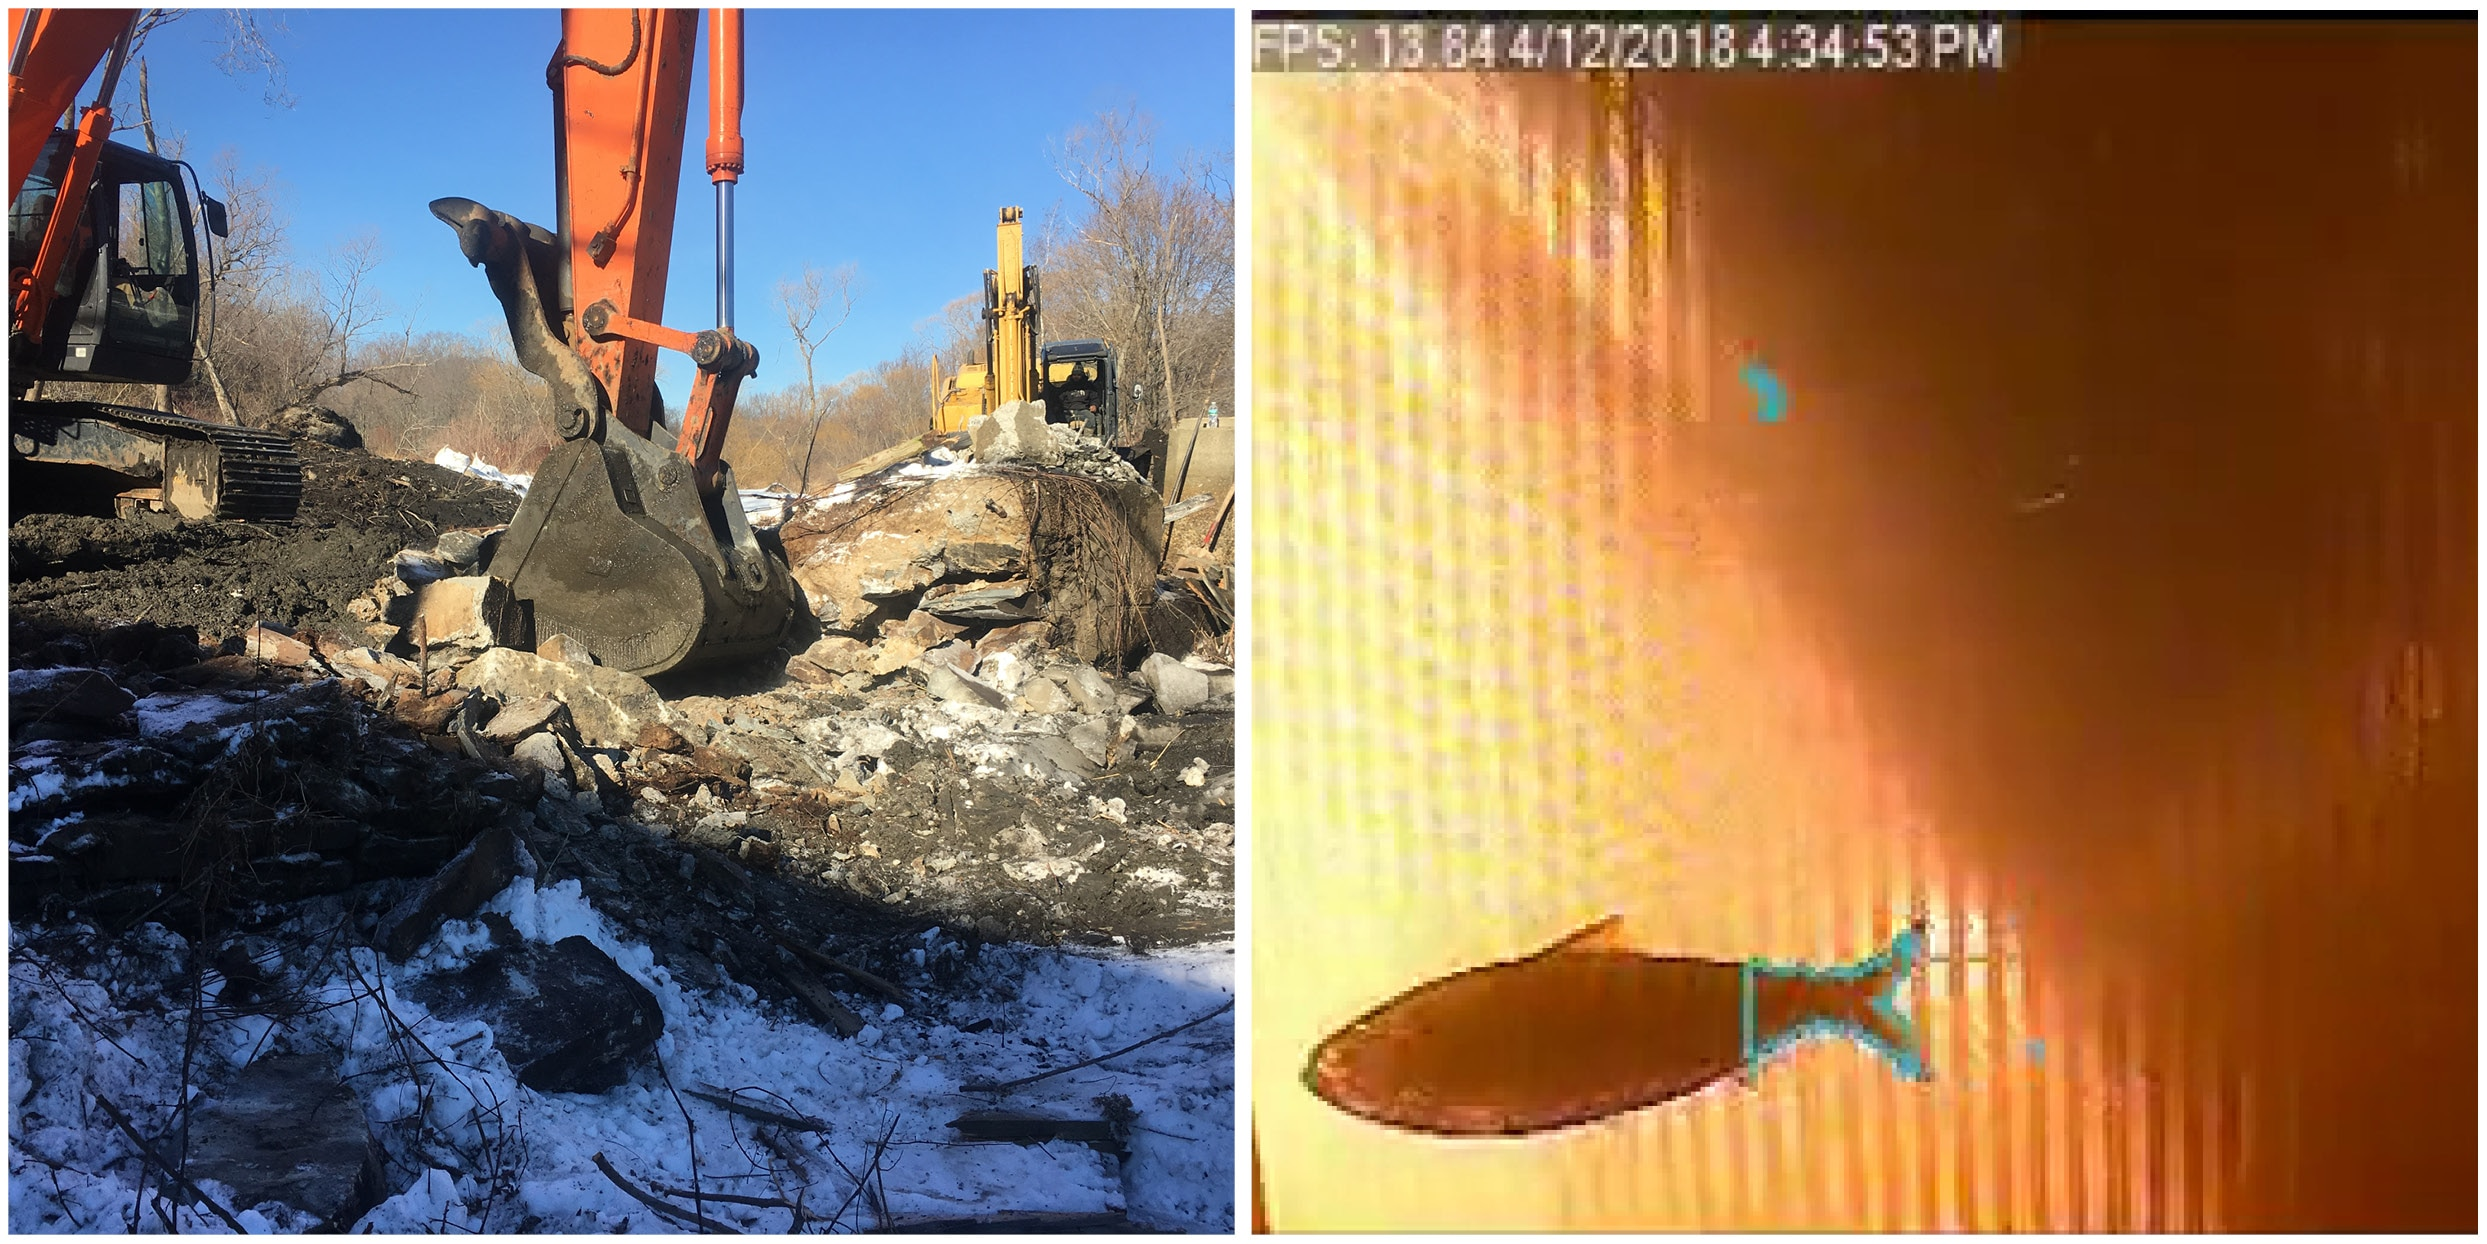 Two images one an excavator removing a dam, the other a river herring as captured by an underwater camera.